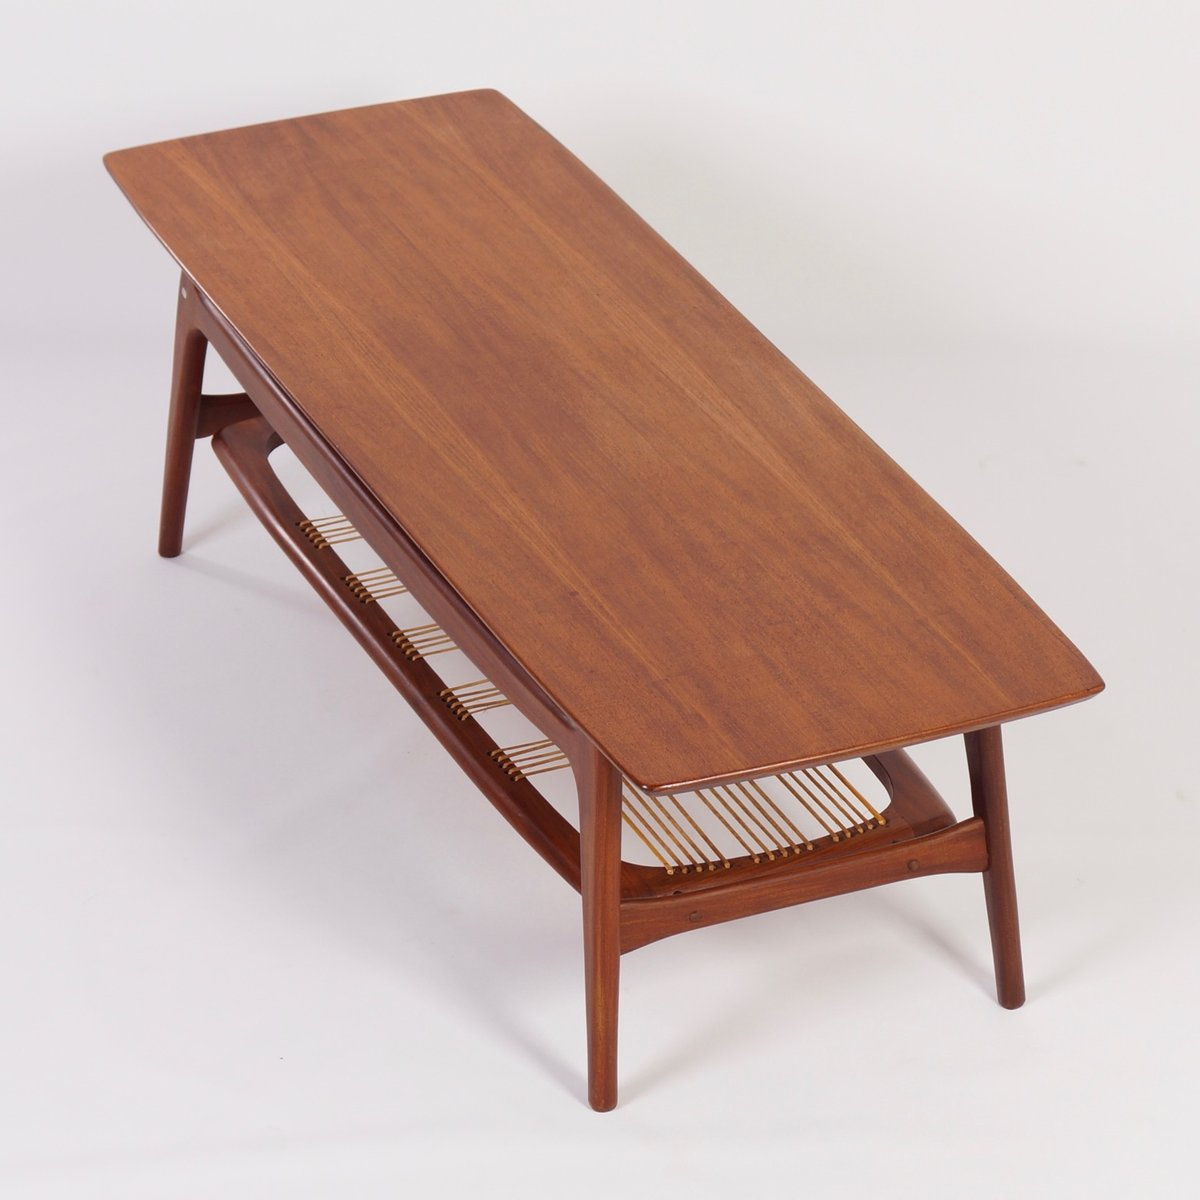 Teak Burger Coffee Table: Teak Coffee Table By Louis Van Teeffelen For Wébé, 1960s